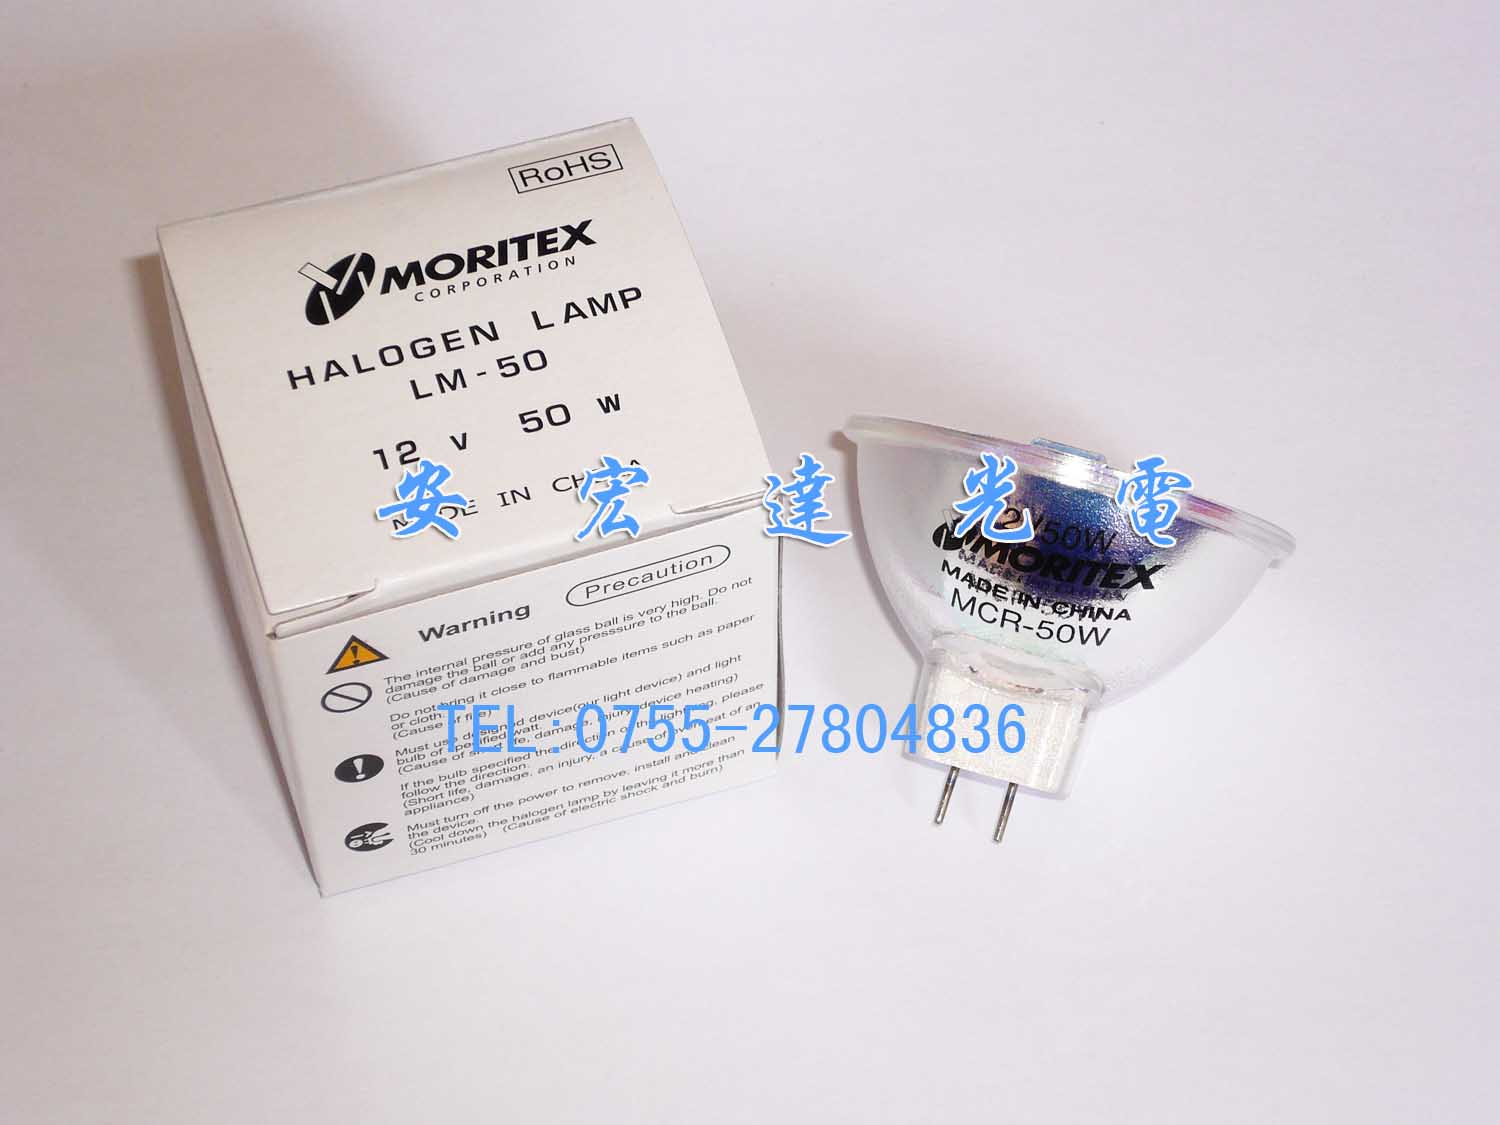 Mortex Uv Bulb Lm-50 , Mcr-50 12v50w Cup Lights Mortex Uv Bulb Lm-50 , Mcr-50 12v50w Cup Lights